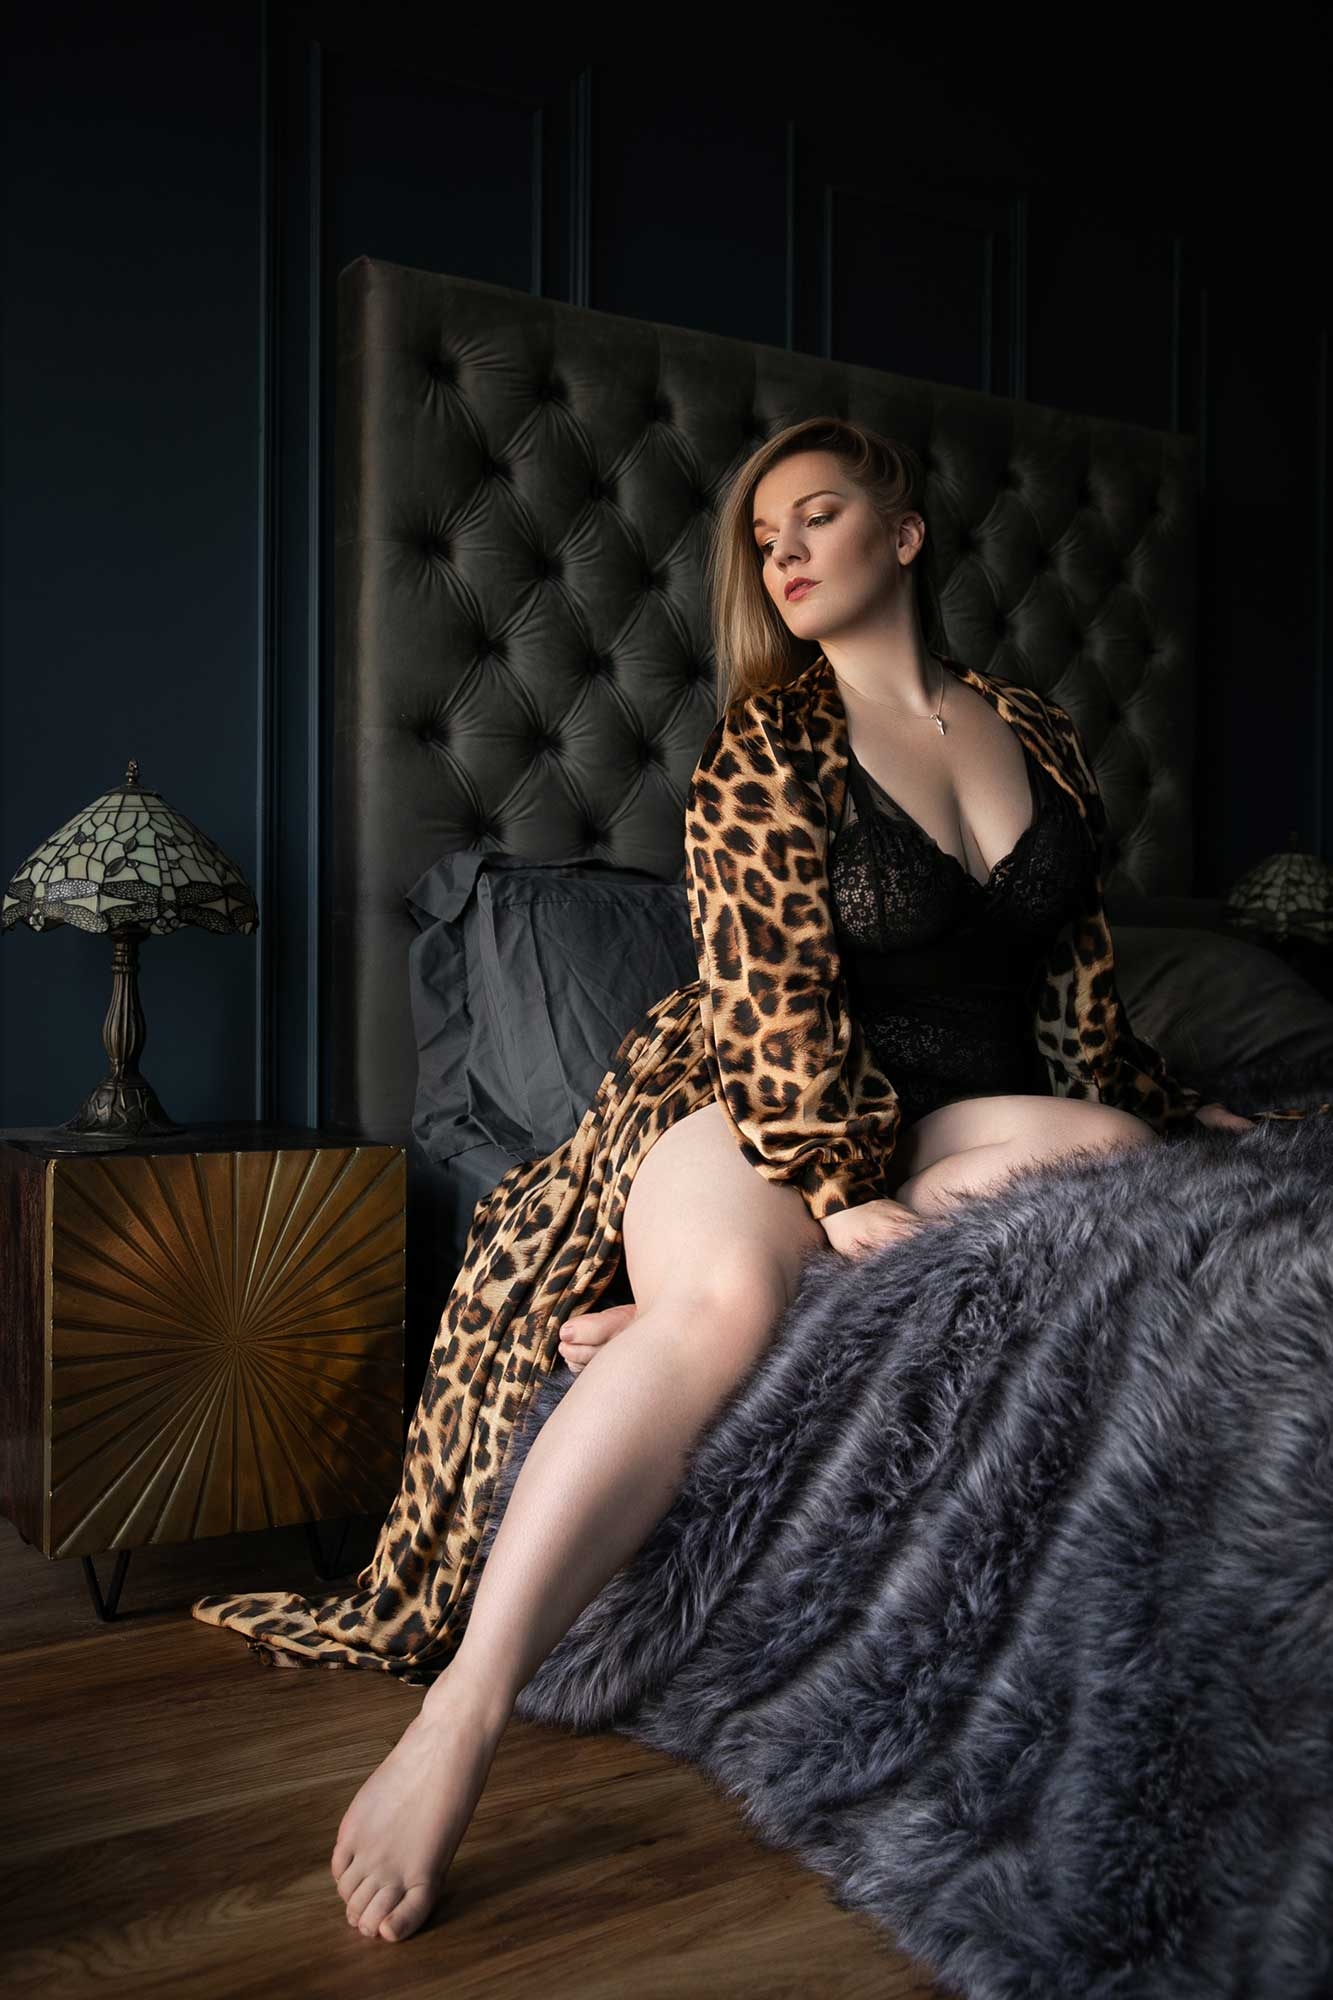 Highlights of 2020 - Tigz Rice wears Tutti Rouge Lingerie in the Art Deco Boudoir